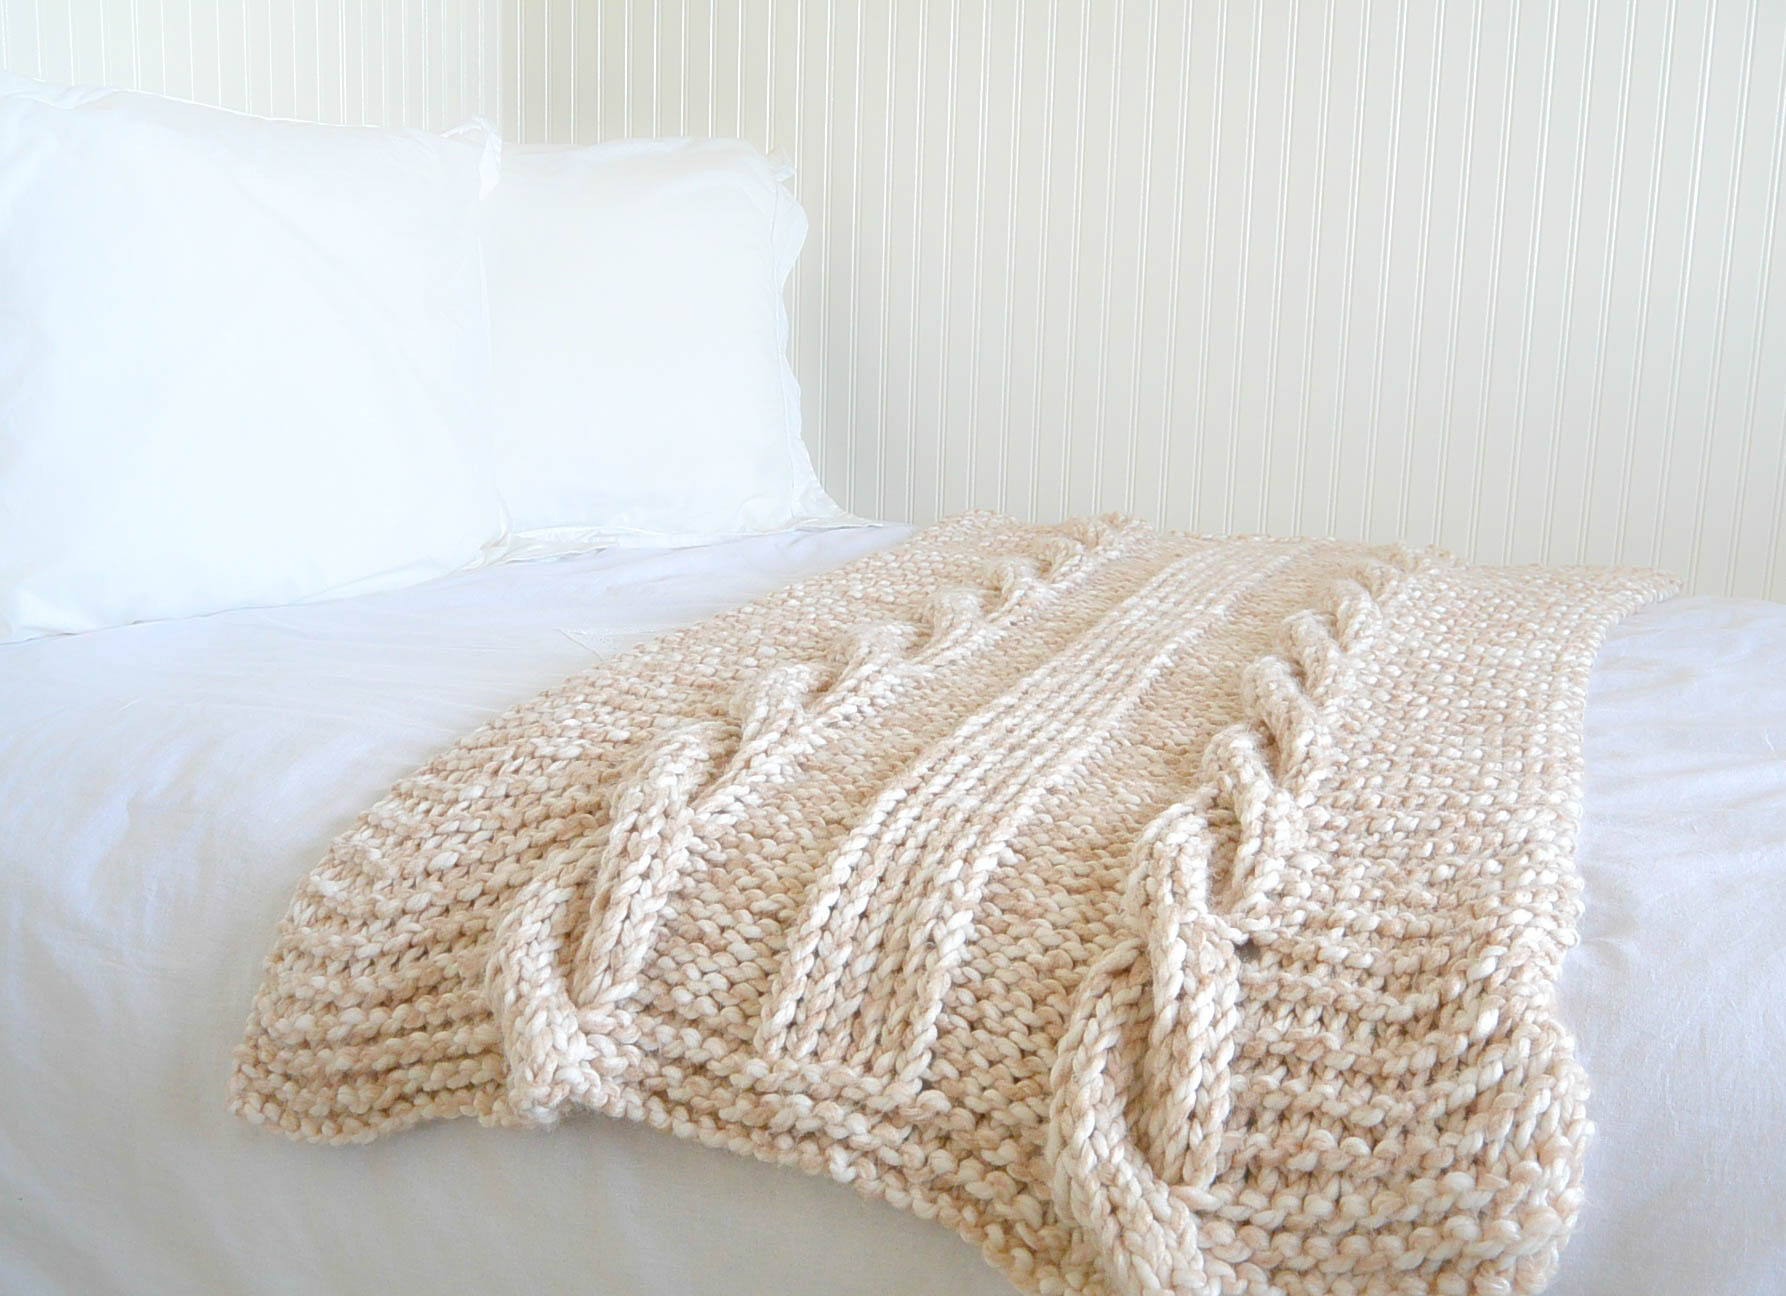 Sirdar Childrens Knitting Patterns : Endless Cables Chunky Knit Throw Pattern   Mama In A Stitch